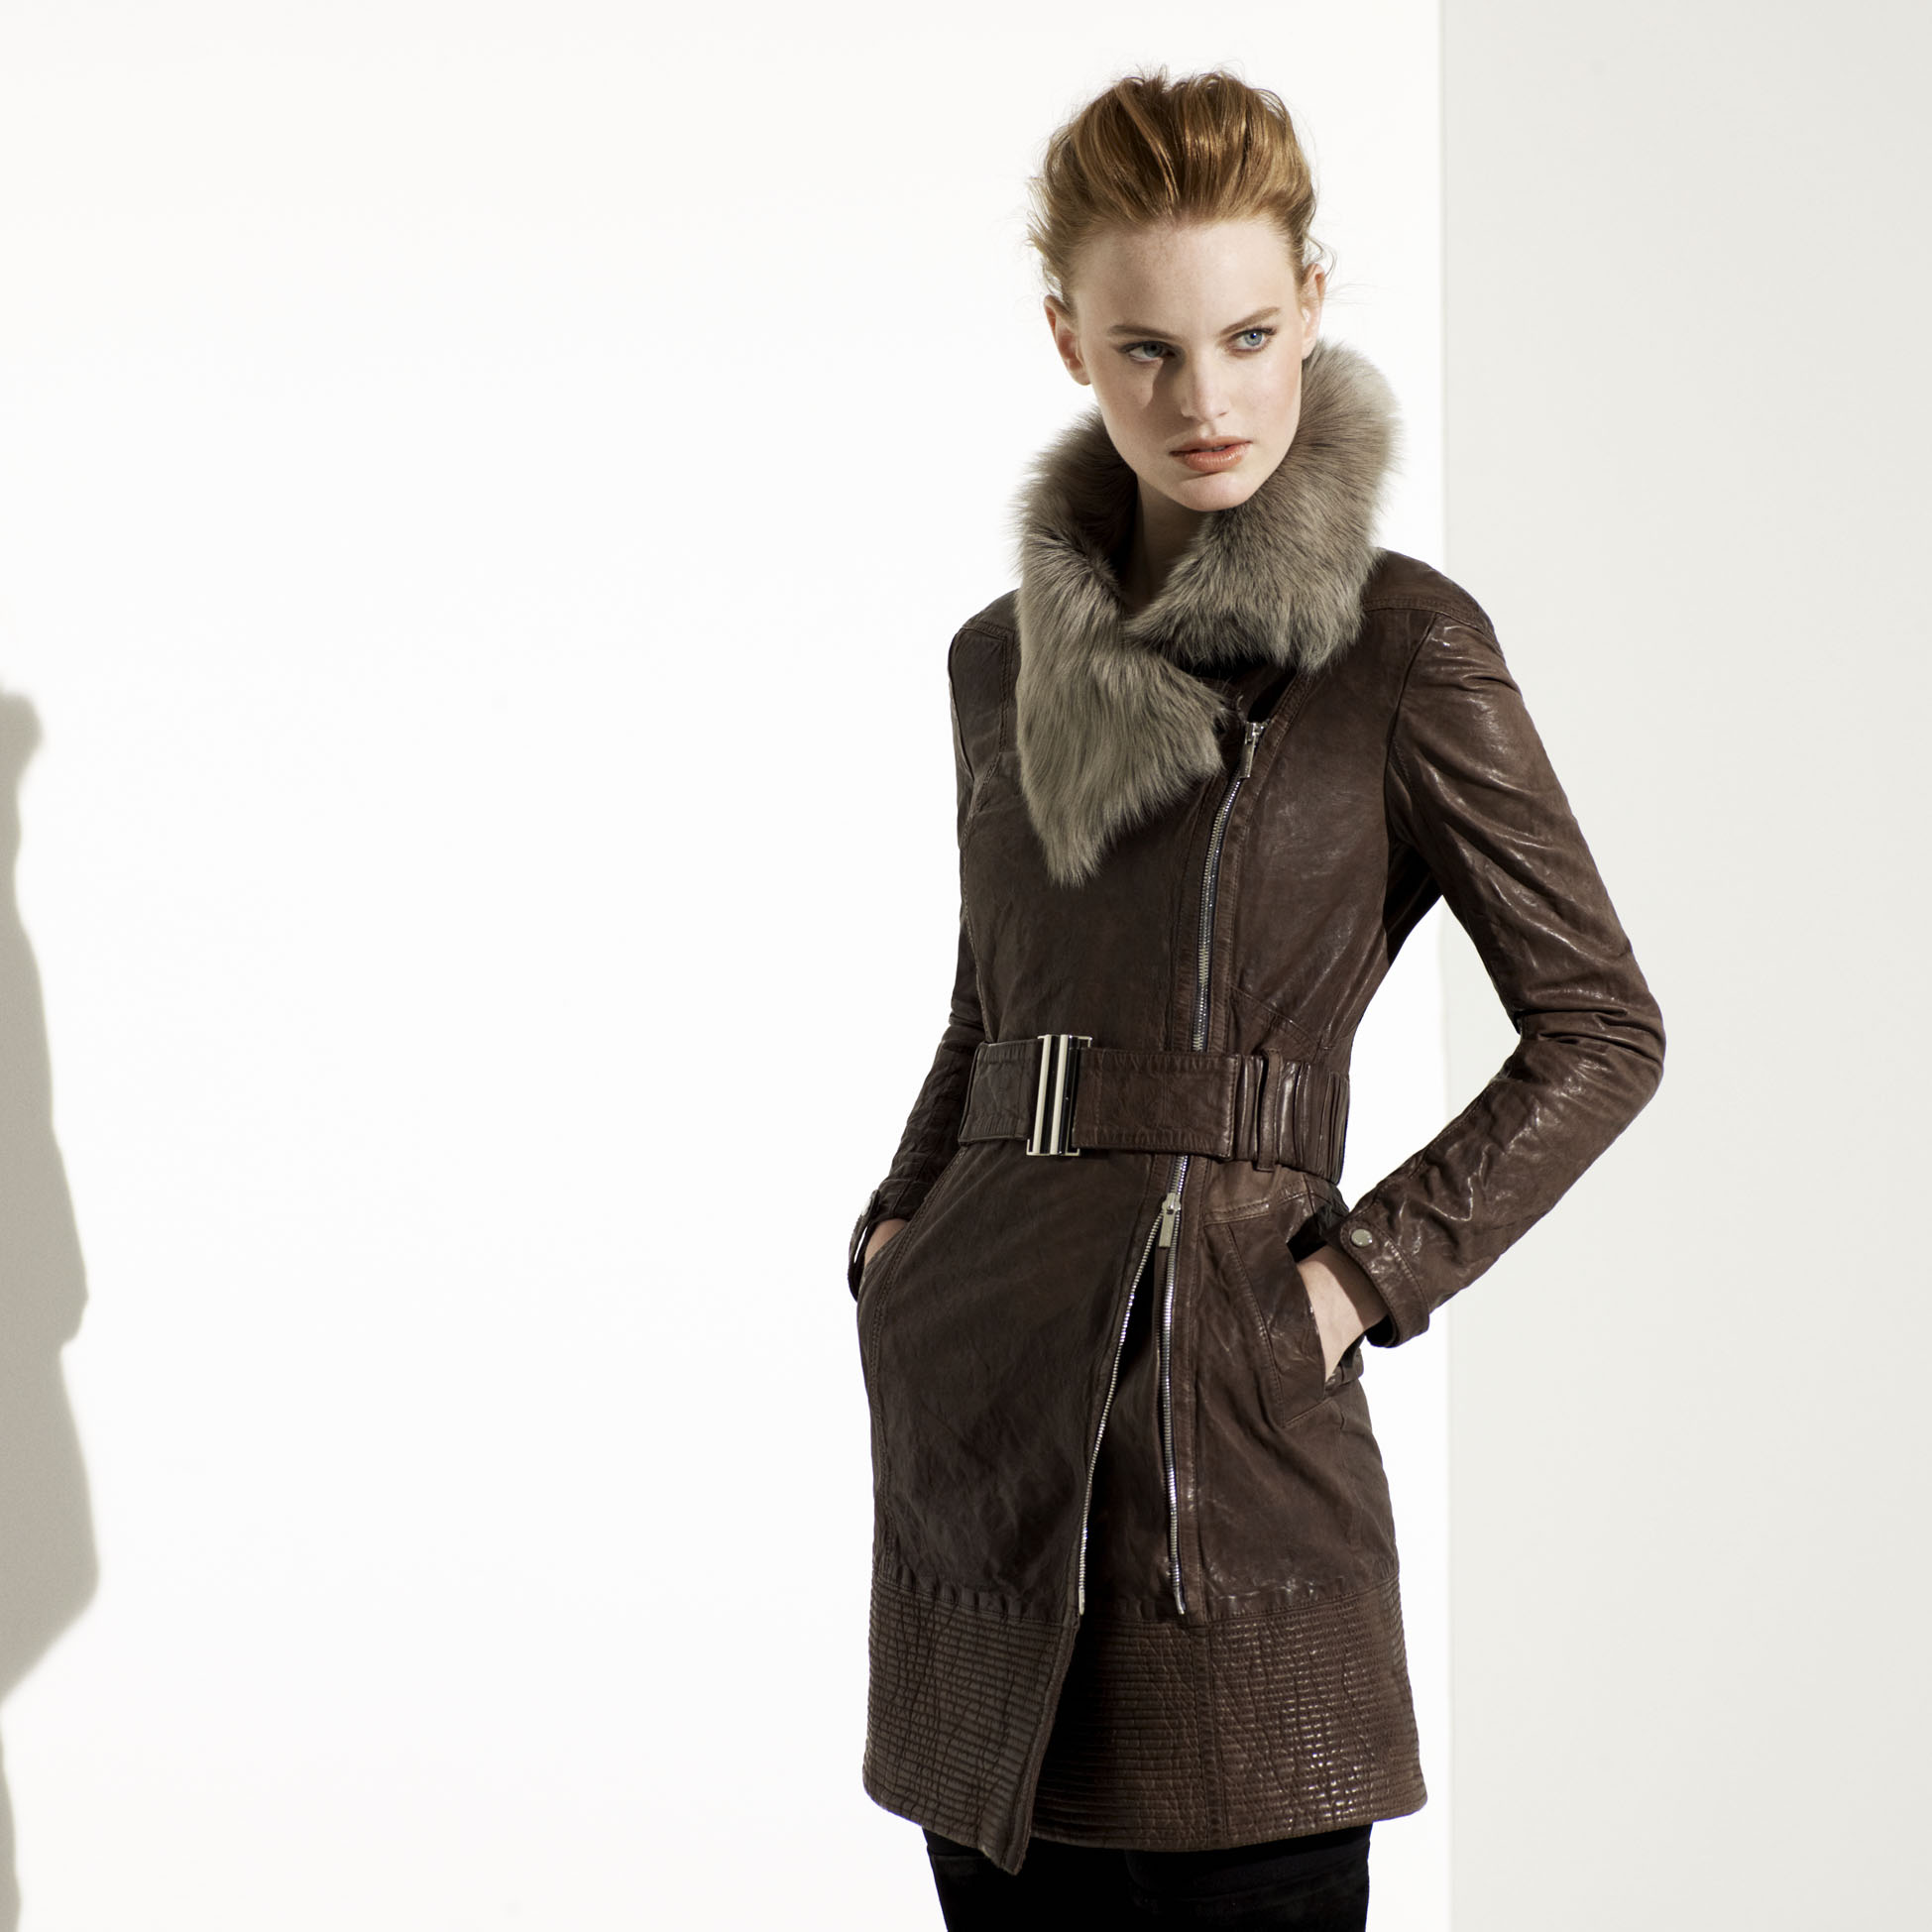 COMING SOON… Leather Fur Trimmed Coat | Karen Millen blog